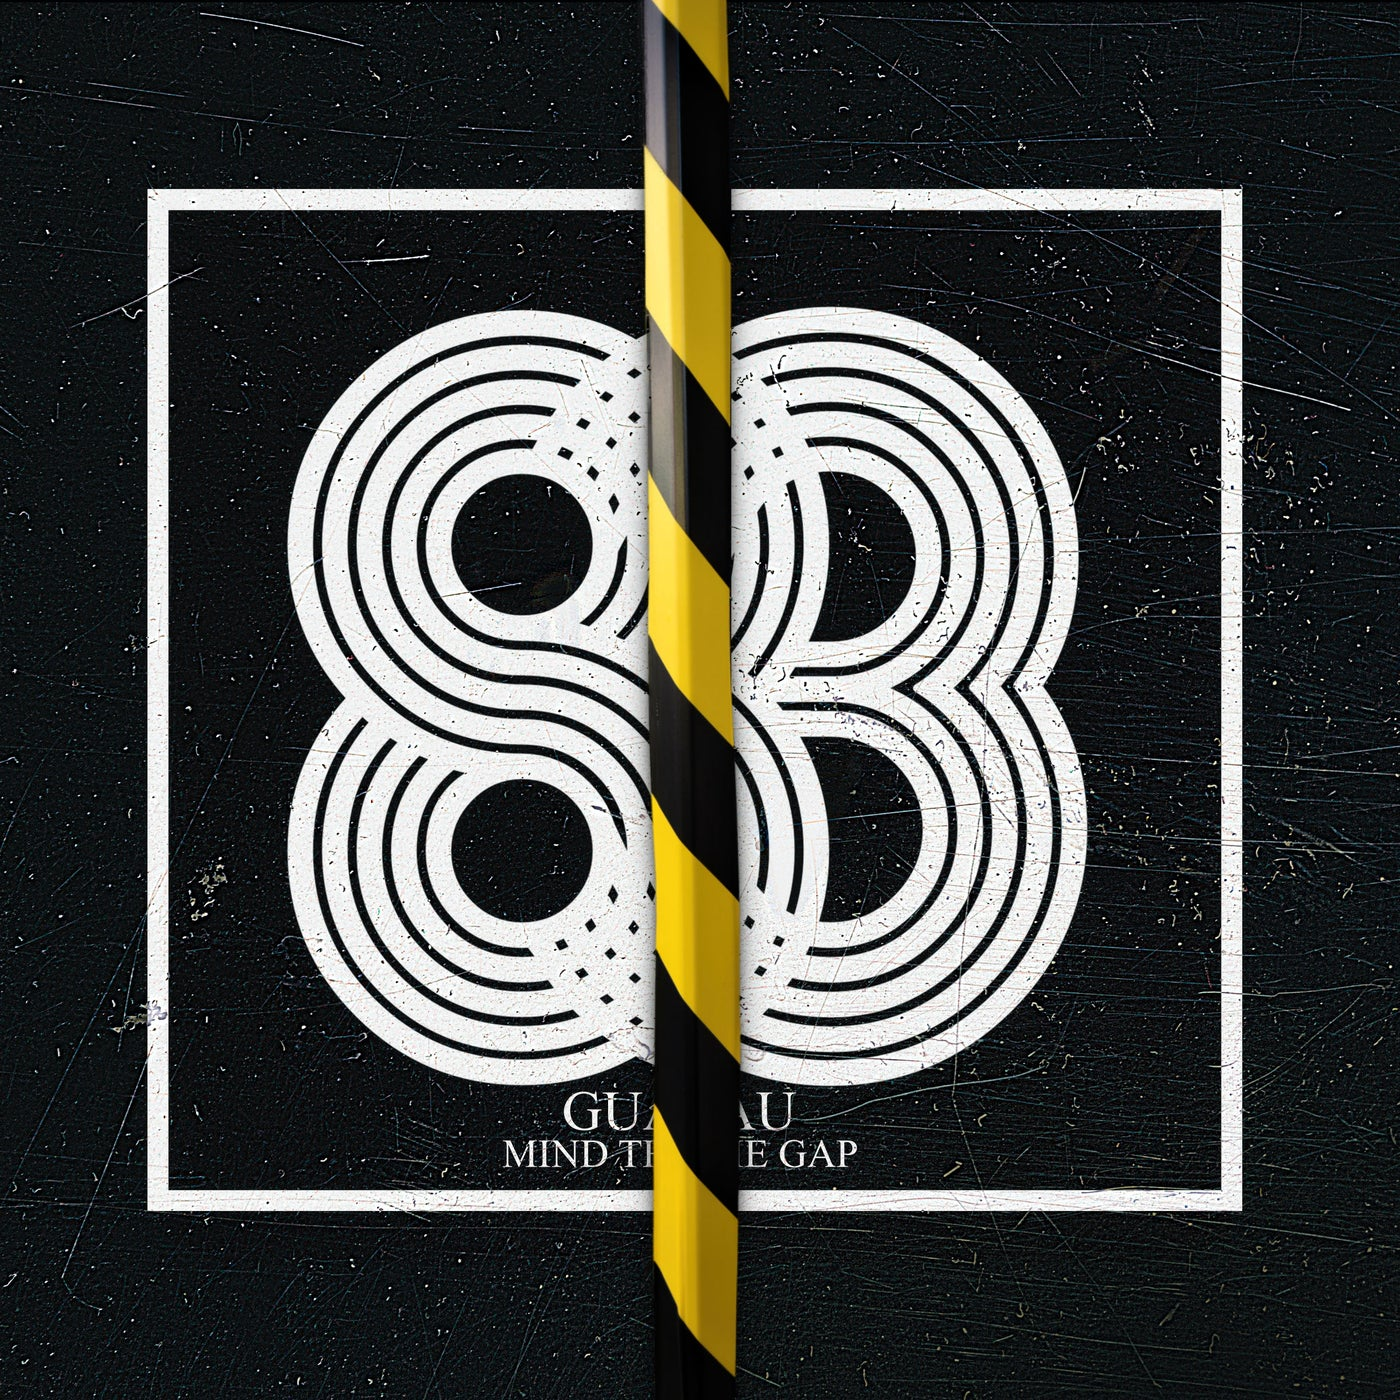 Mind The Gap from 83 on Beatport